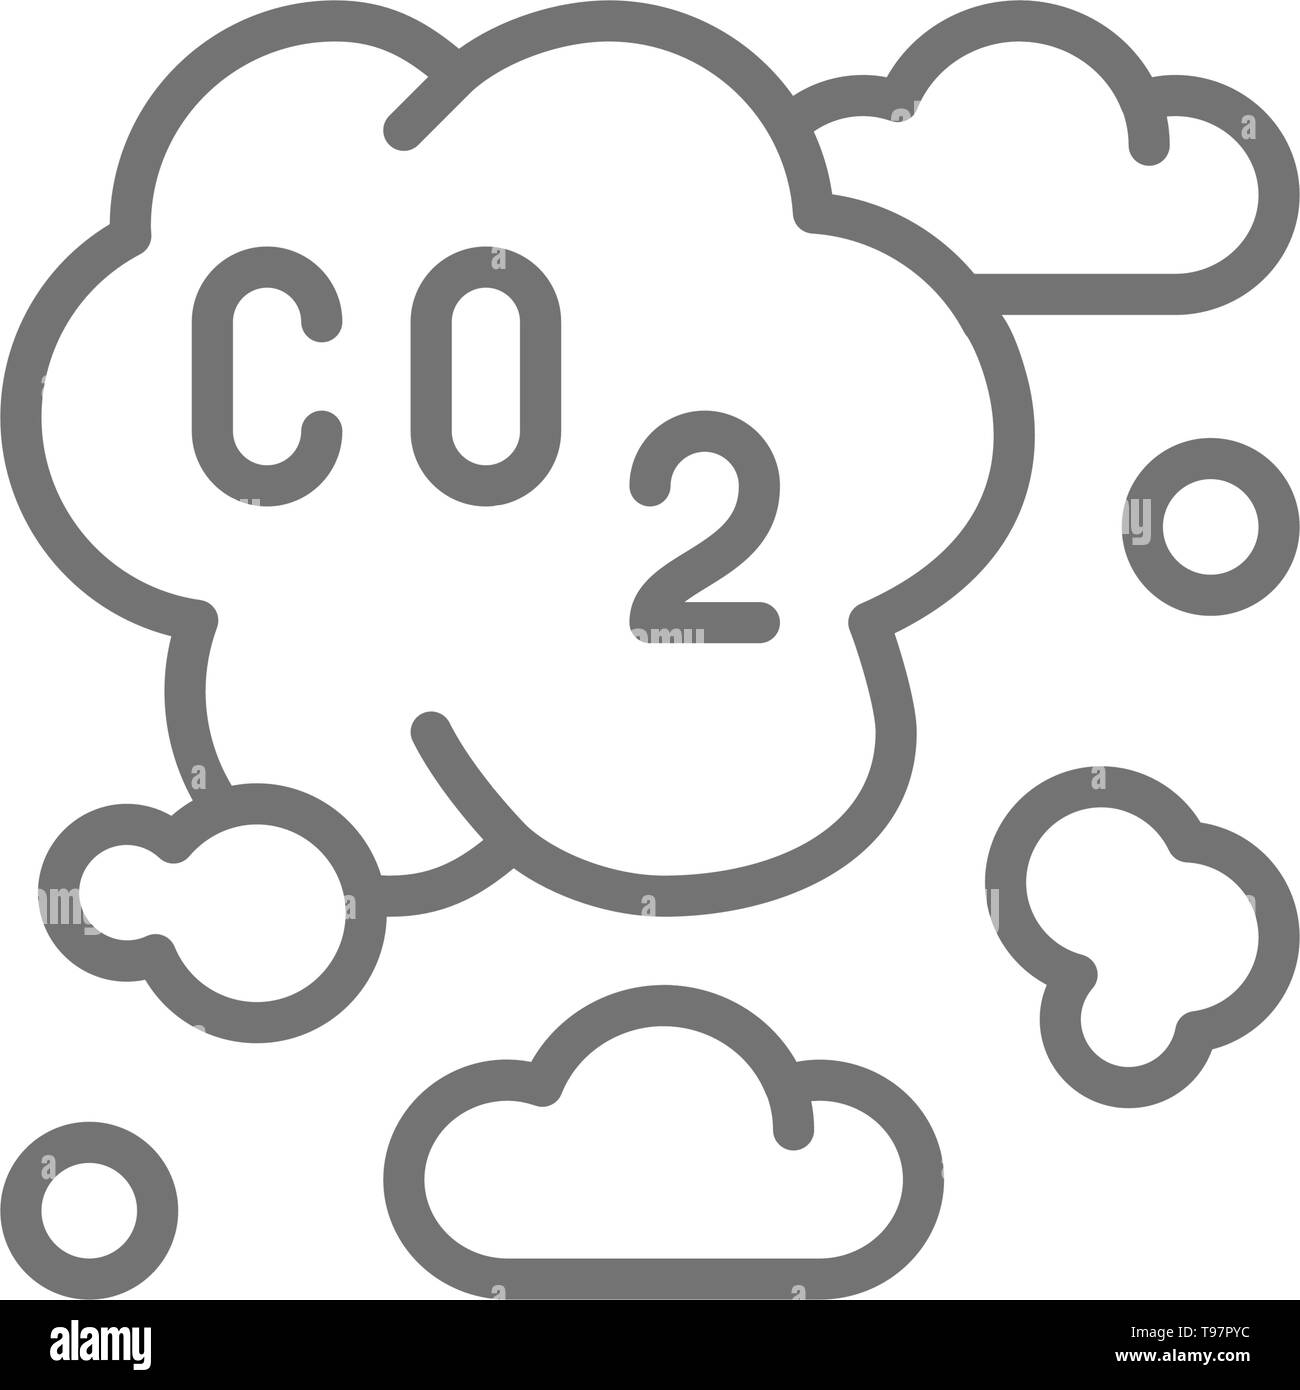 Air pollution, industrial smog, co2 emissions line icon. - Stock Image